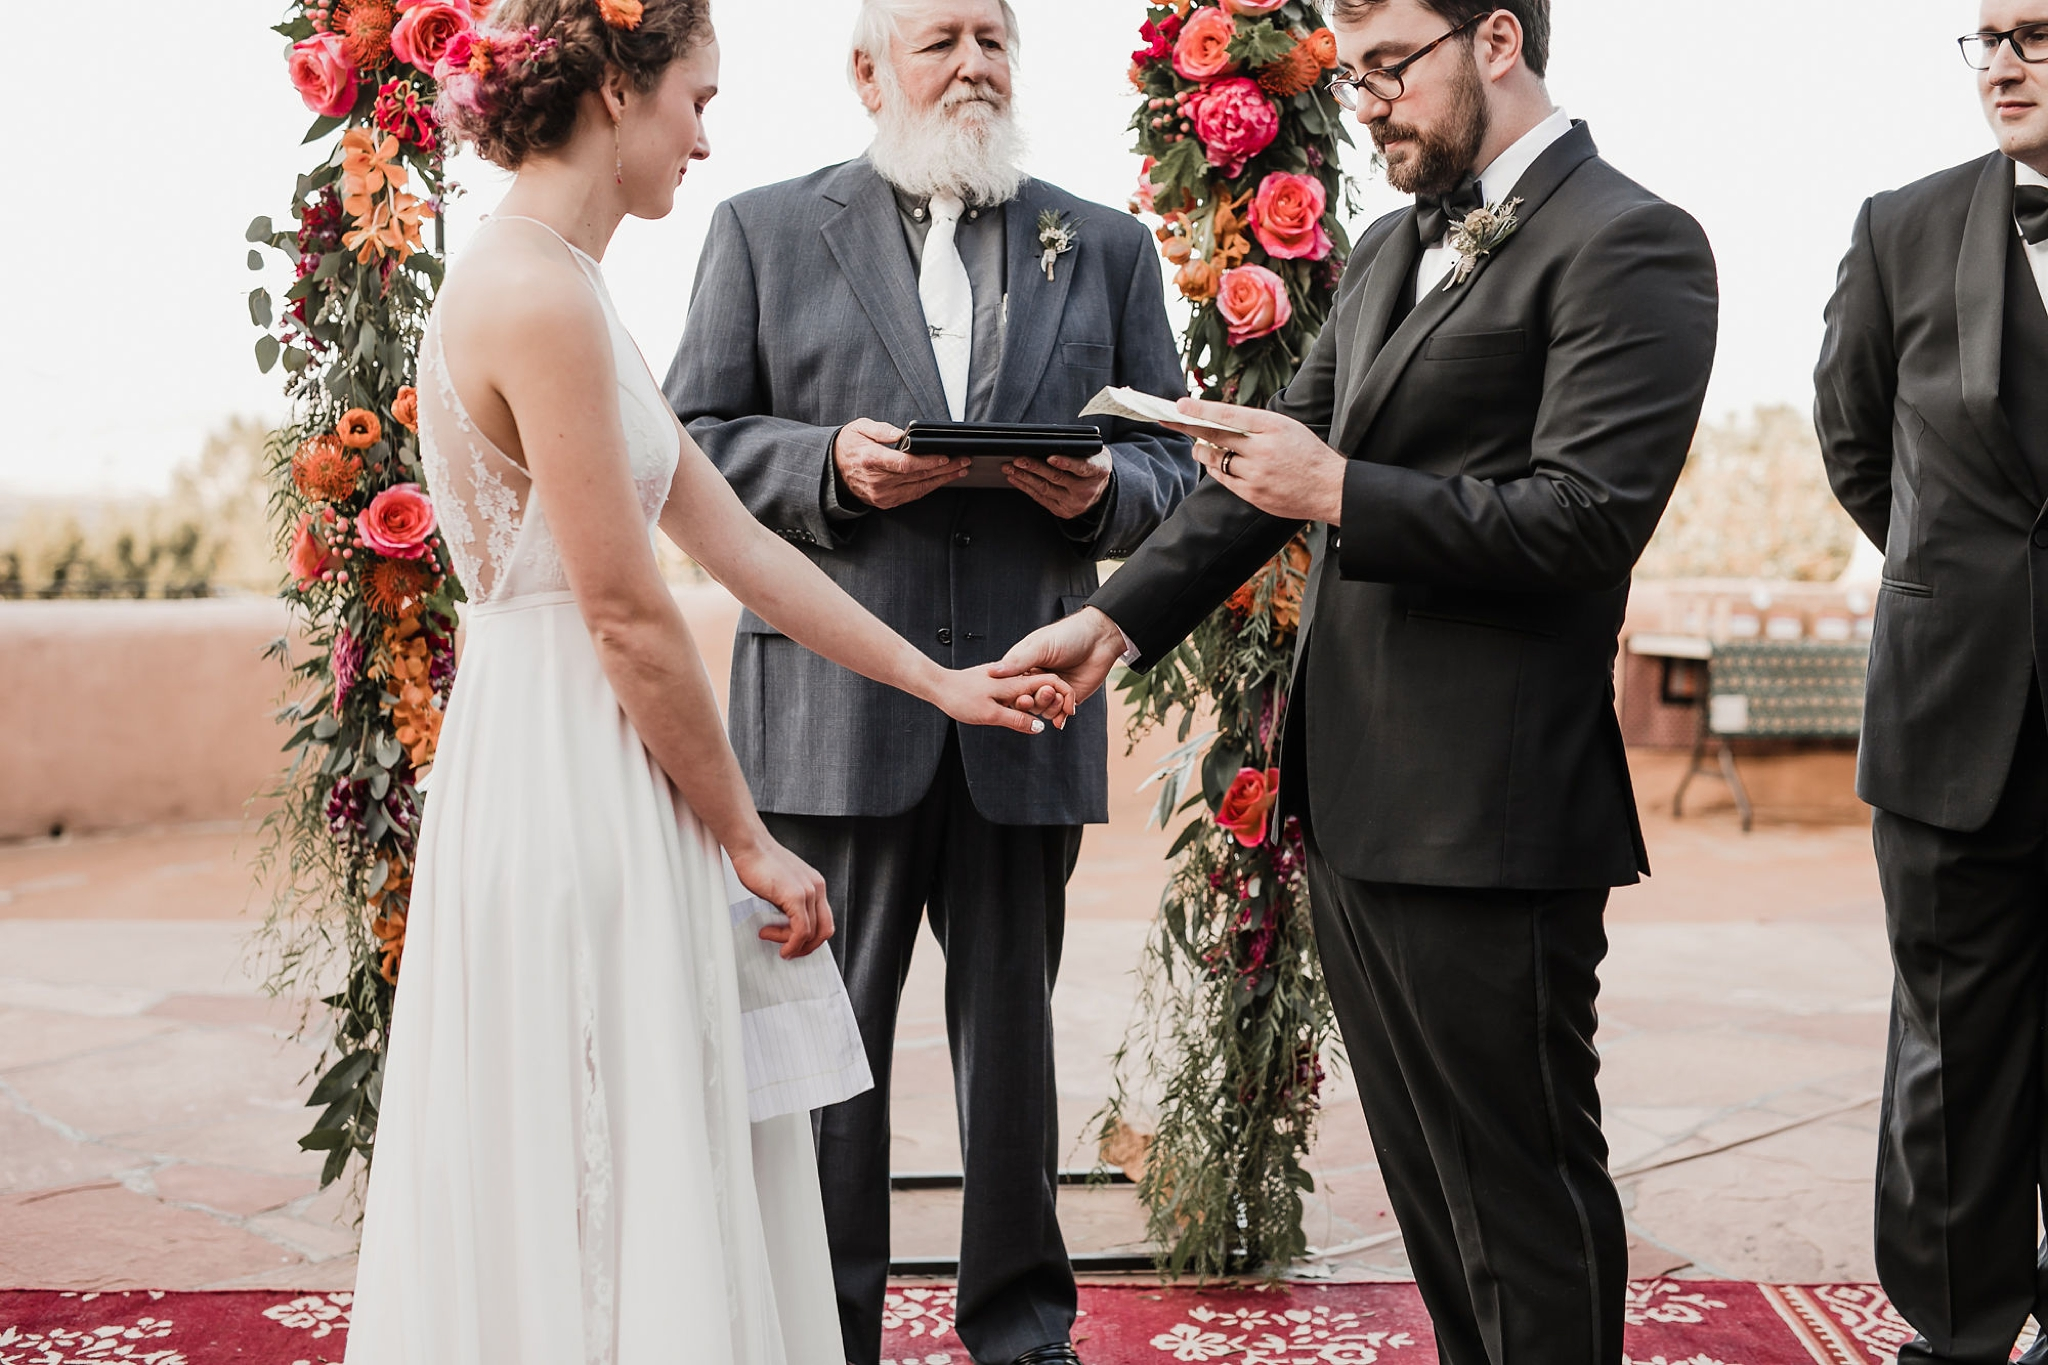 Alicia+lucia+photography+-+albuquerque+wedding+photographer+-+santa+fe+wedding+photography+-+new+mexico+wedding+photographer+-+new+mexico+wedding+-+wedding+vows+-+writing+your+own+vows+-+wedding+inspo_0028.jpg